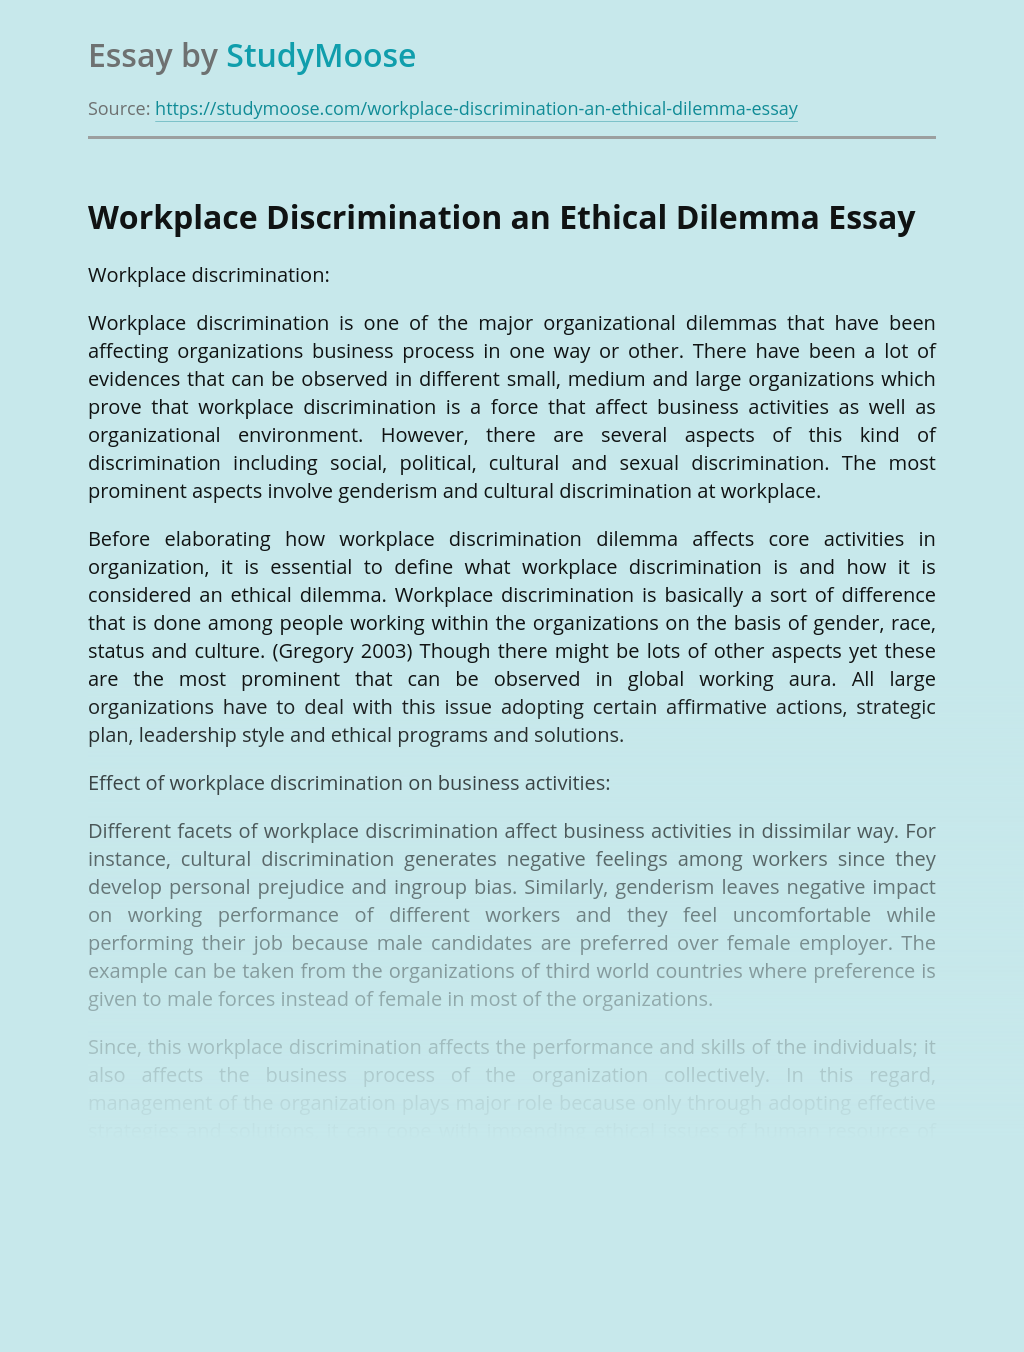 Workplace Discrimination an Ethical Dilemma